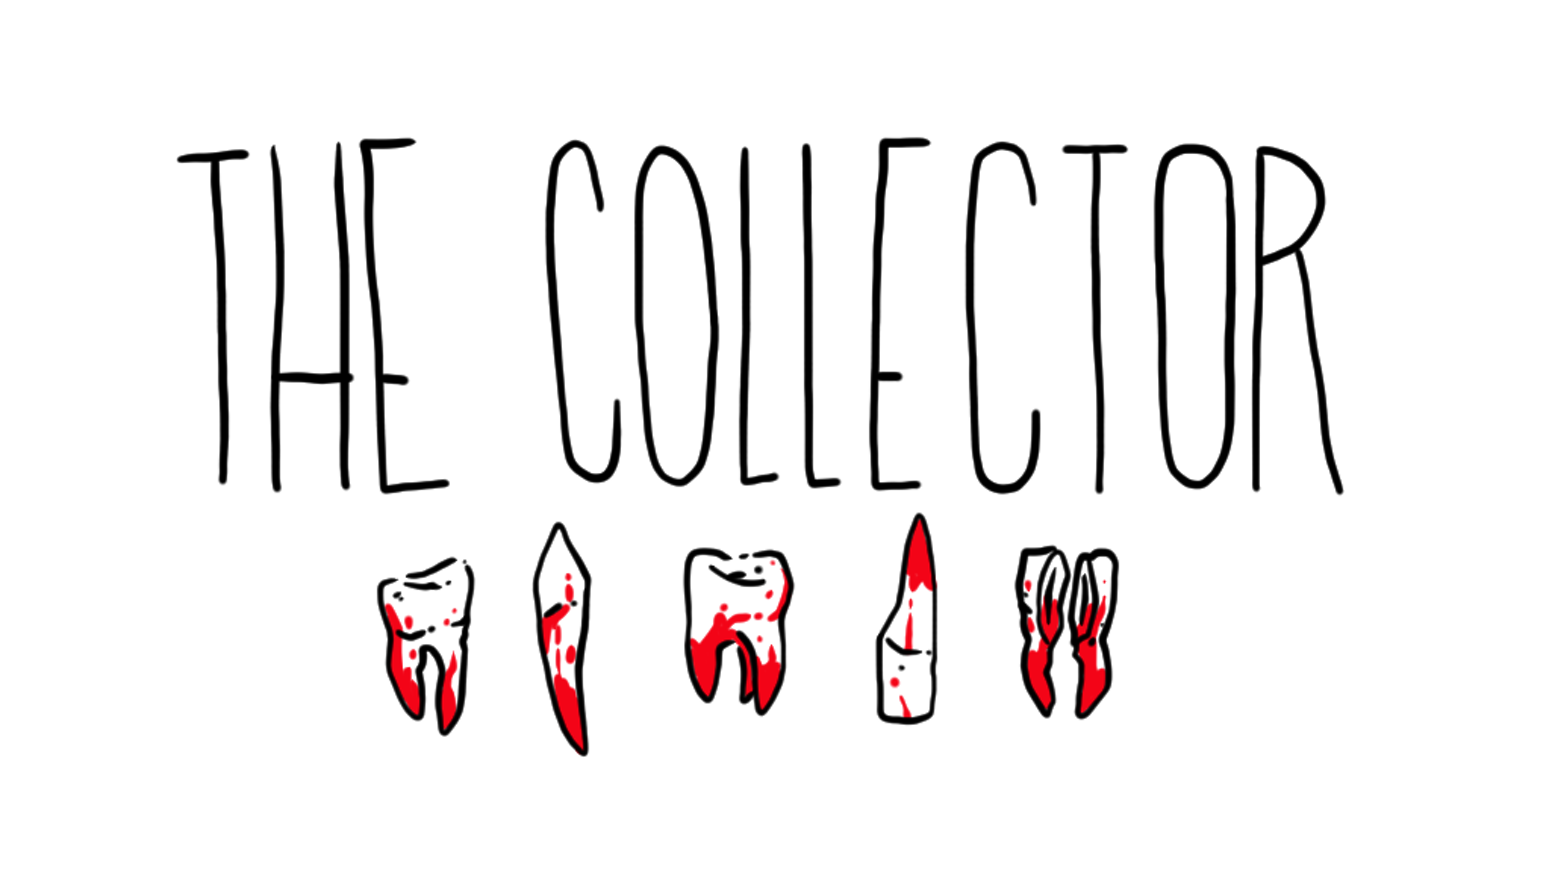 A risograph comic about a serial killer and his teeth collection